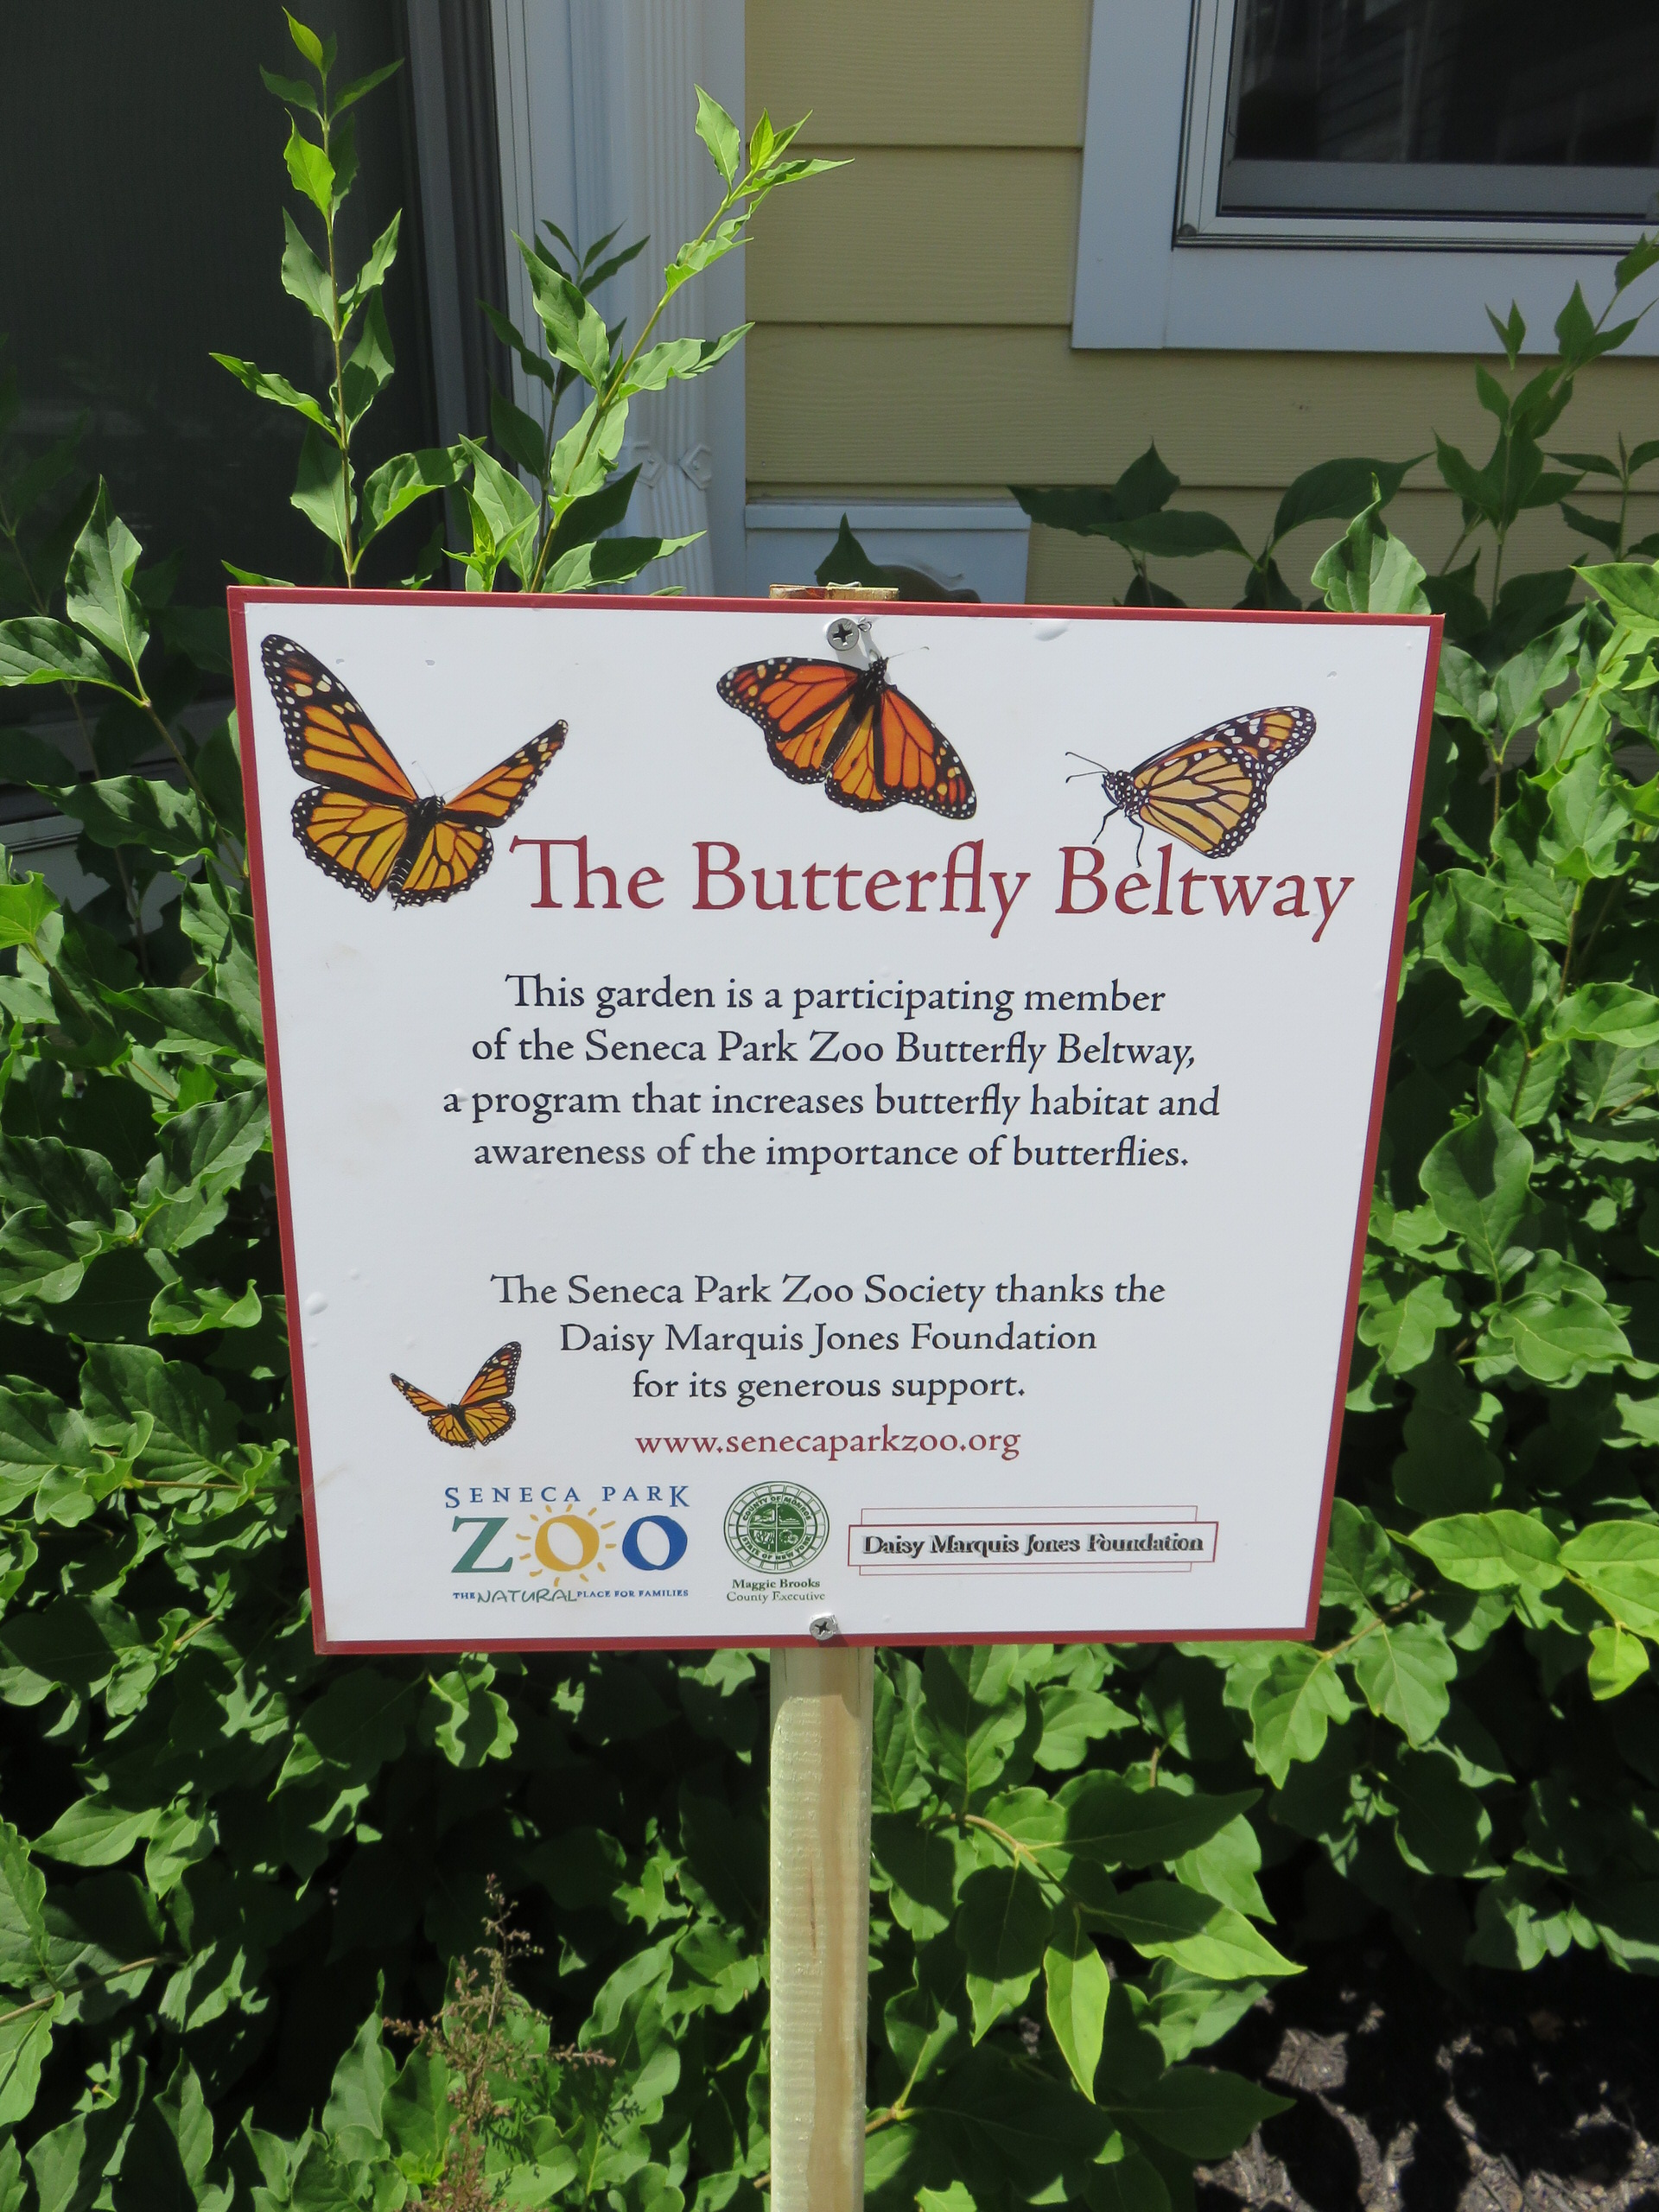 The butterfly Beltway Seneca Park Zoo sign at DePaul